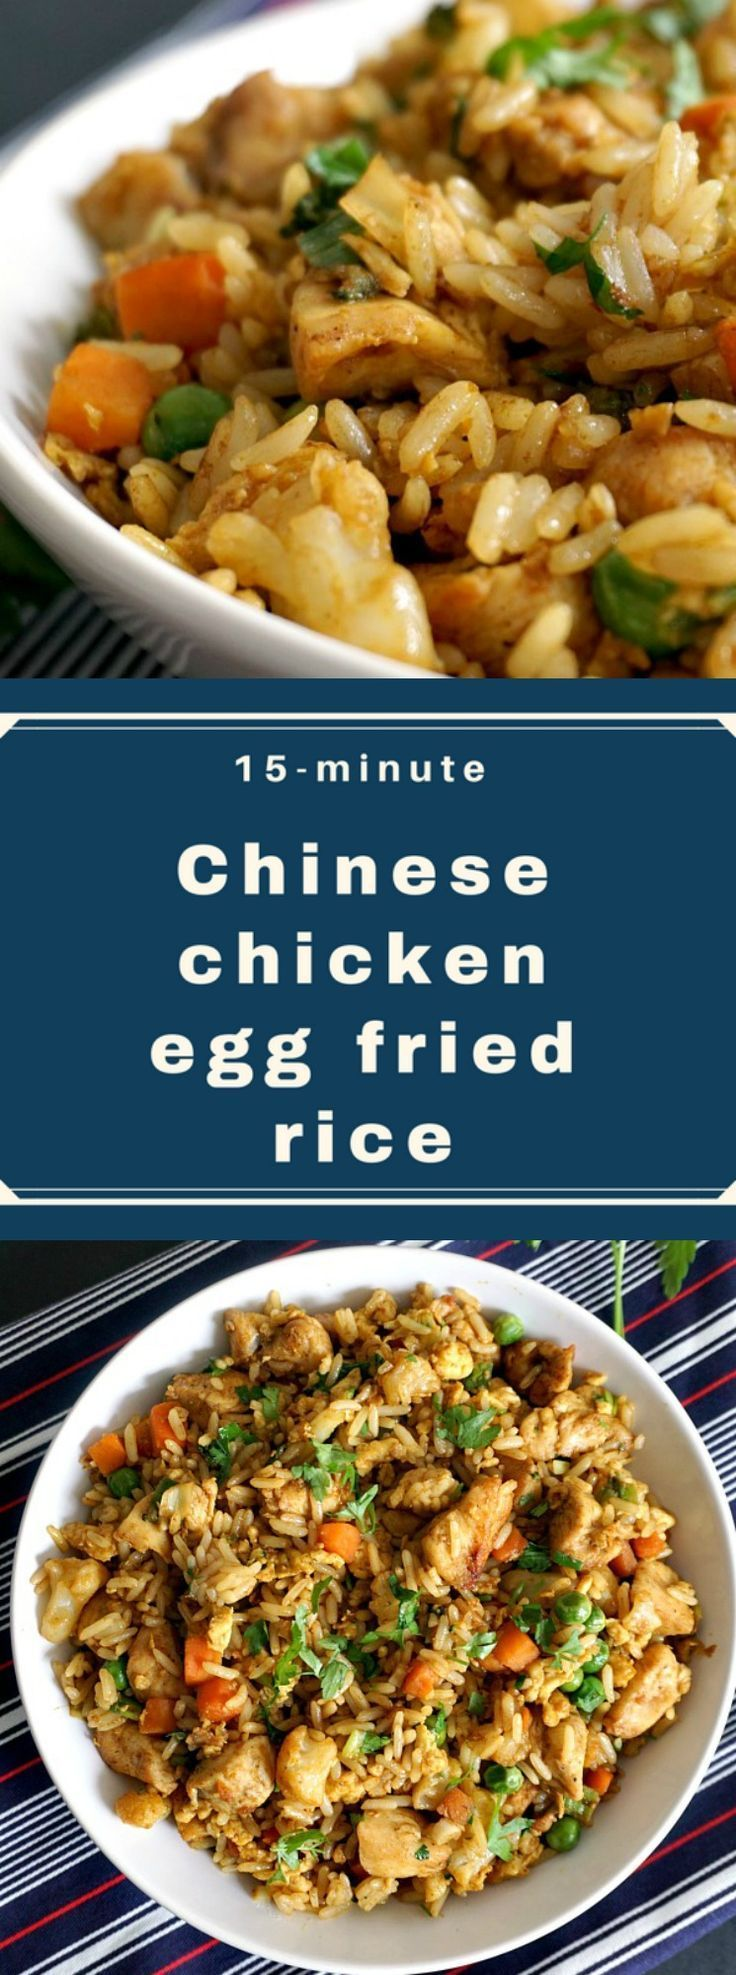 Healthy Chinese chicken egg fried rice recipe, the easiest, quickest and tastiest way to use leftover rice. So flavourful and tasty, this dish makes a perfect 15-minute dinner